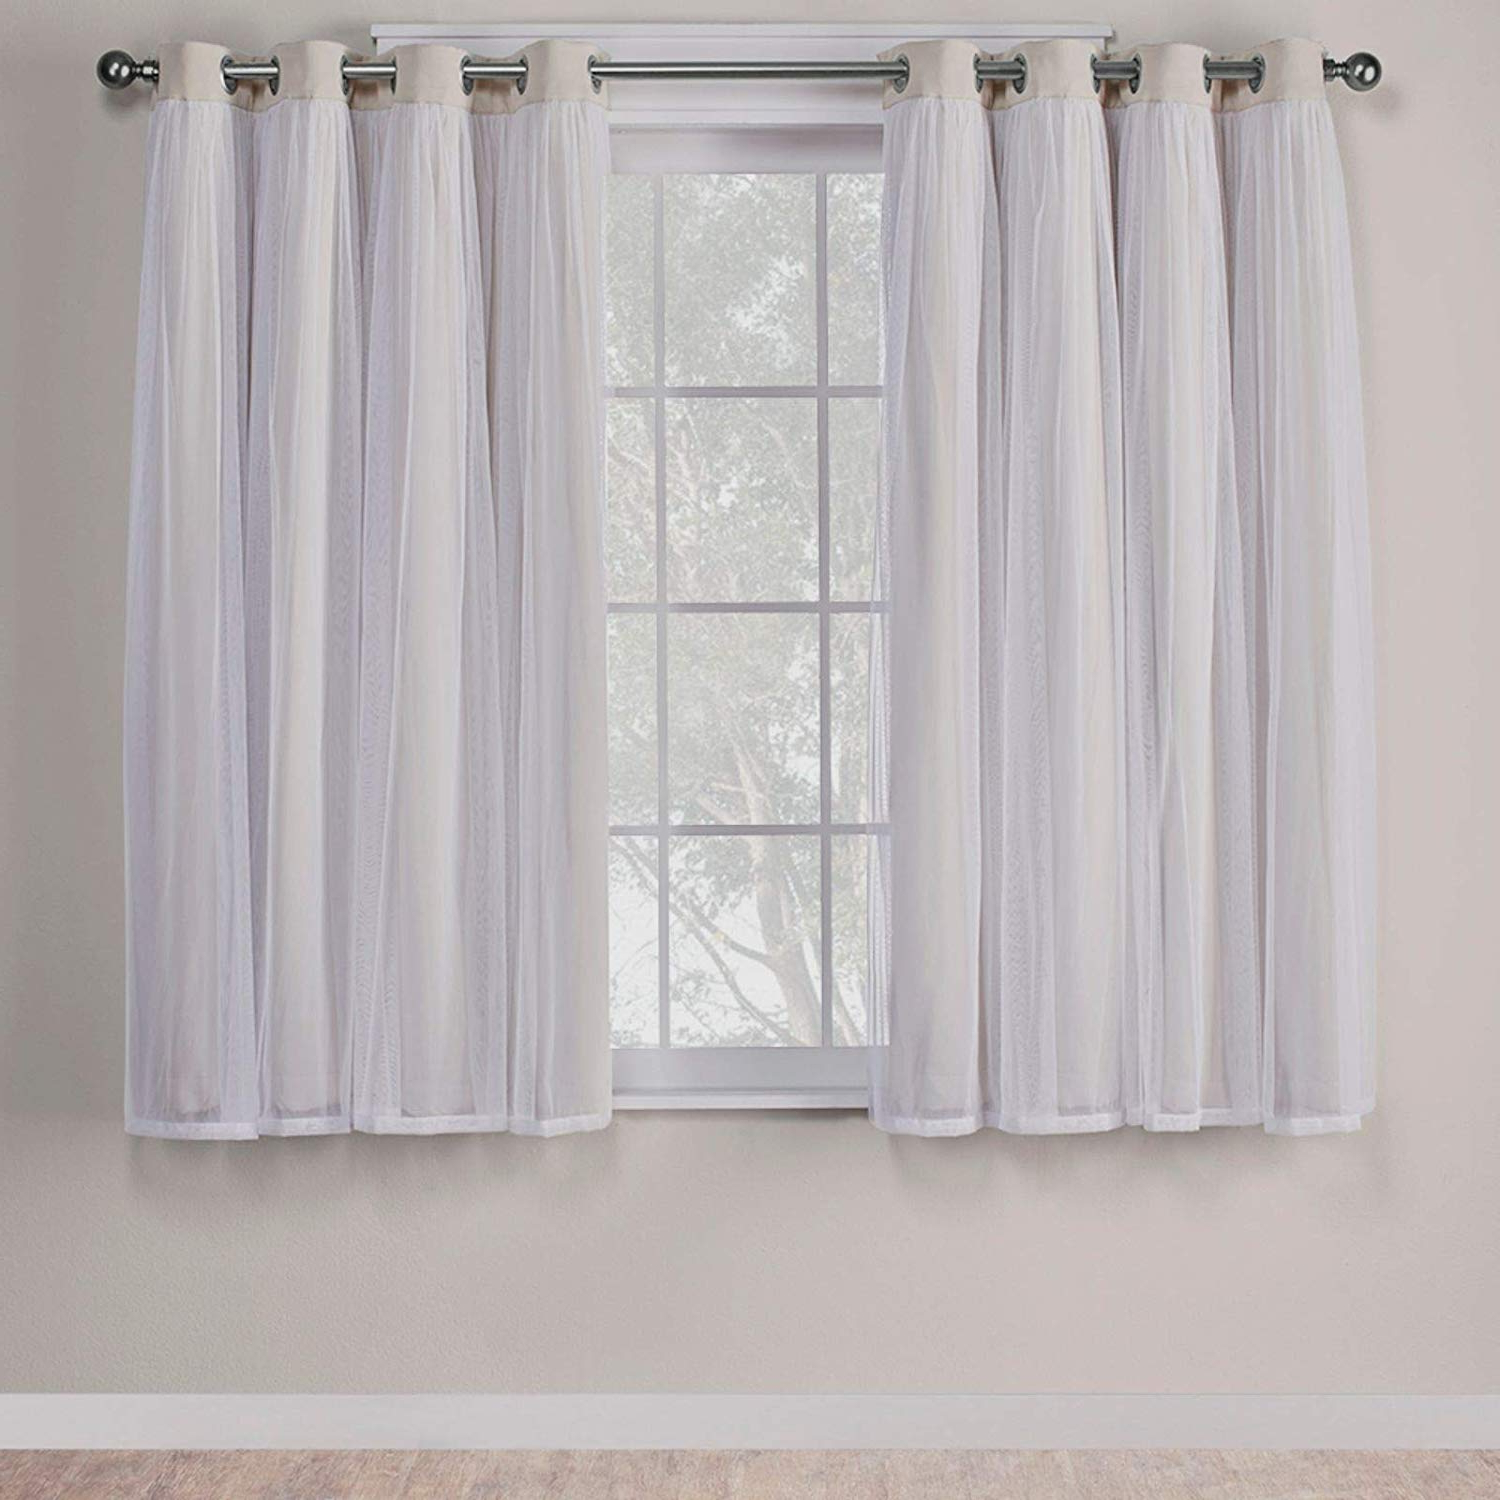 Catarina Layered Curtain Panel Pairs With Grommet Top Regarding Most Up To Date Exclusive Home Curtains Catarina Layered Solid Blackout And Sheer Window Curtain Panel Pair With Grommet Top, 52x63, Sand, 2 Piece (View 3 of 20)